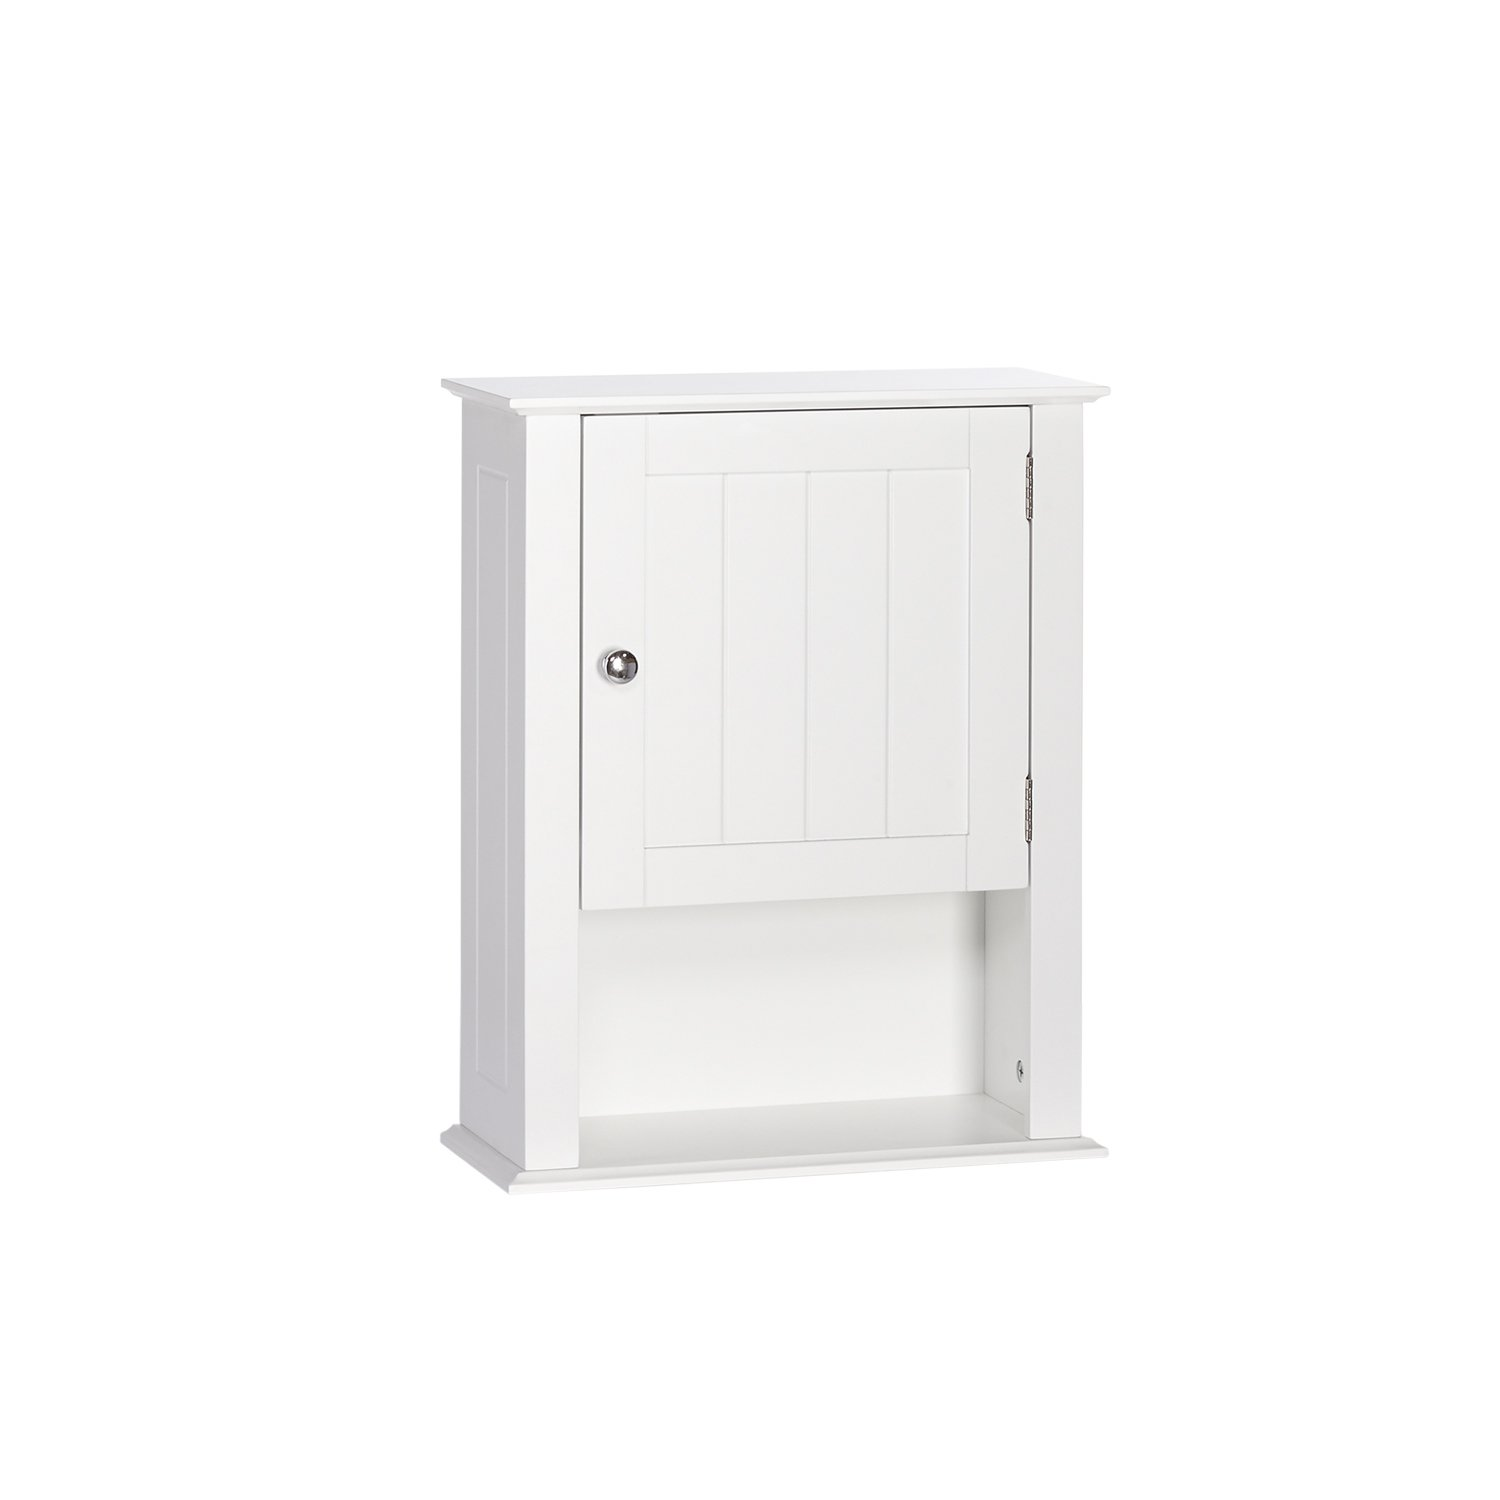 RiverRidge Ashland Collection Single Door Wall Cabinet, White Sourcing Solutions Inc. 06-088